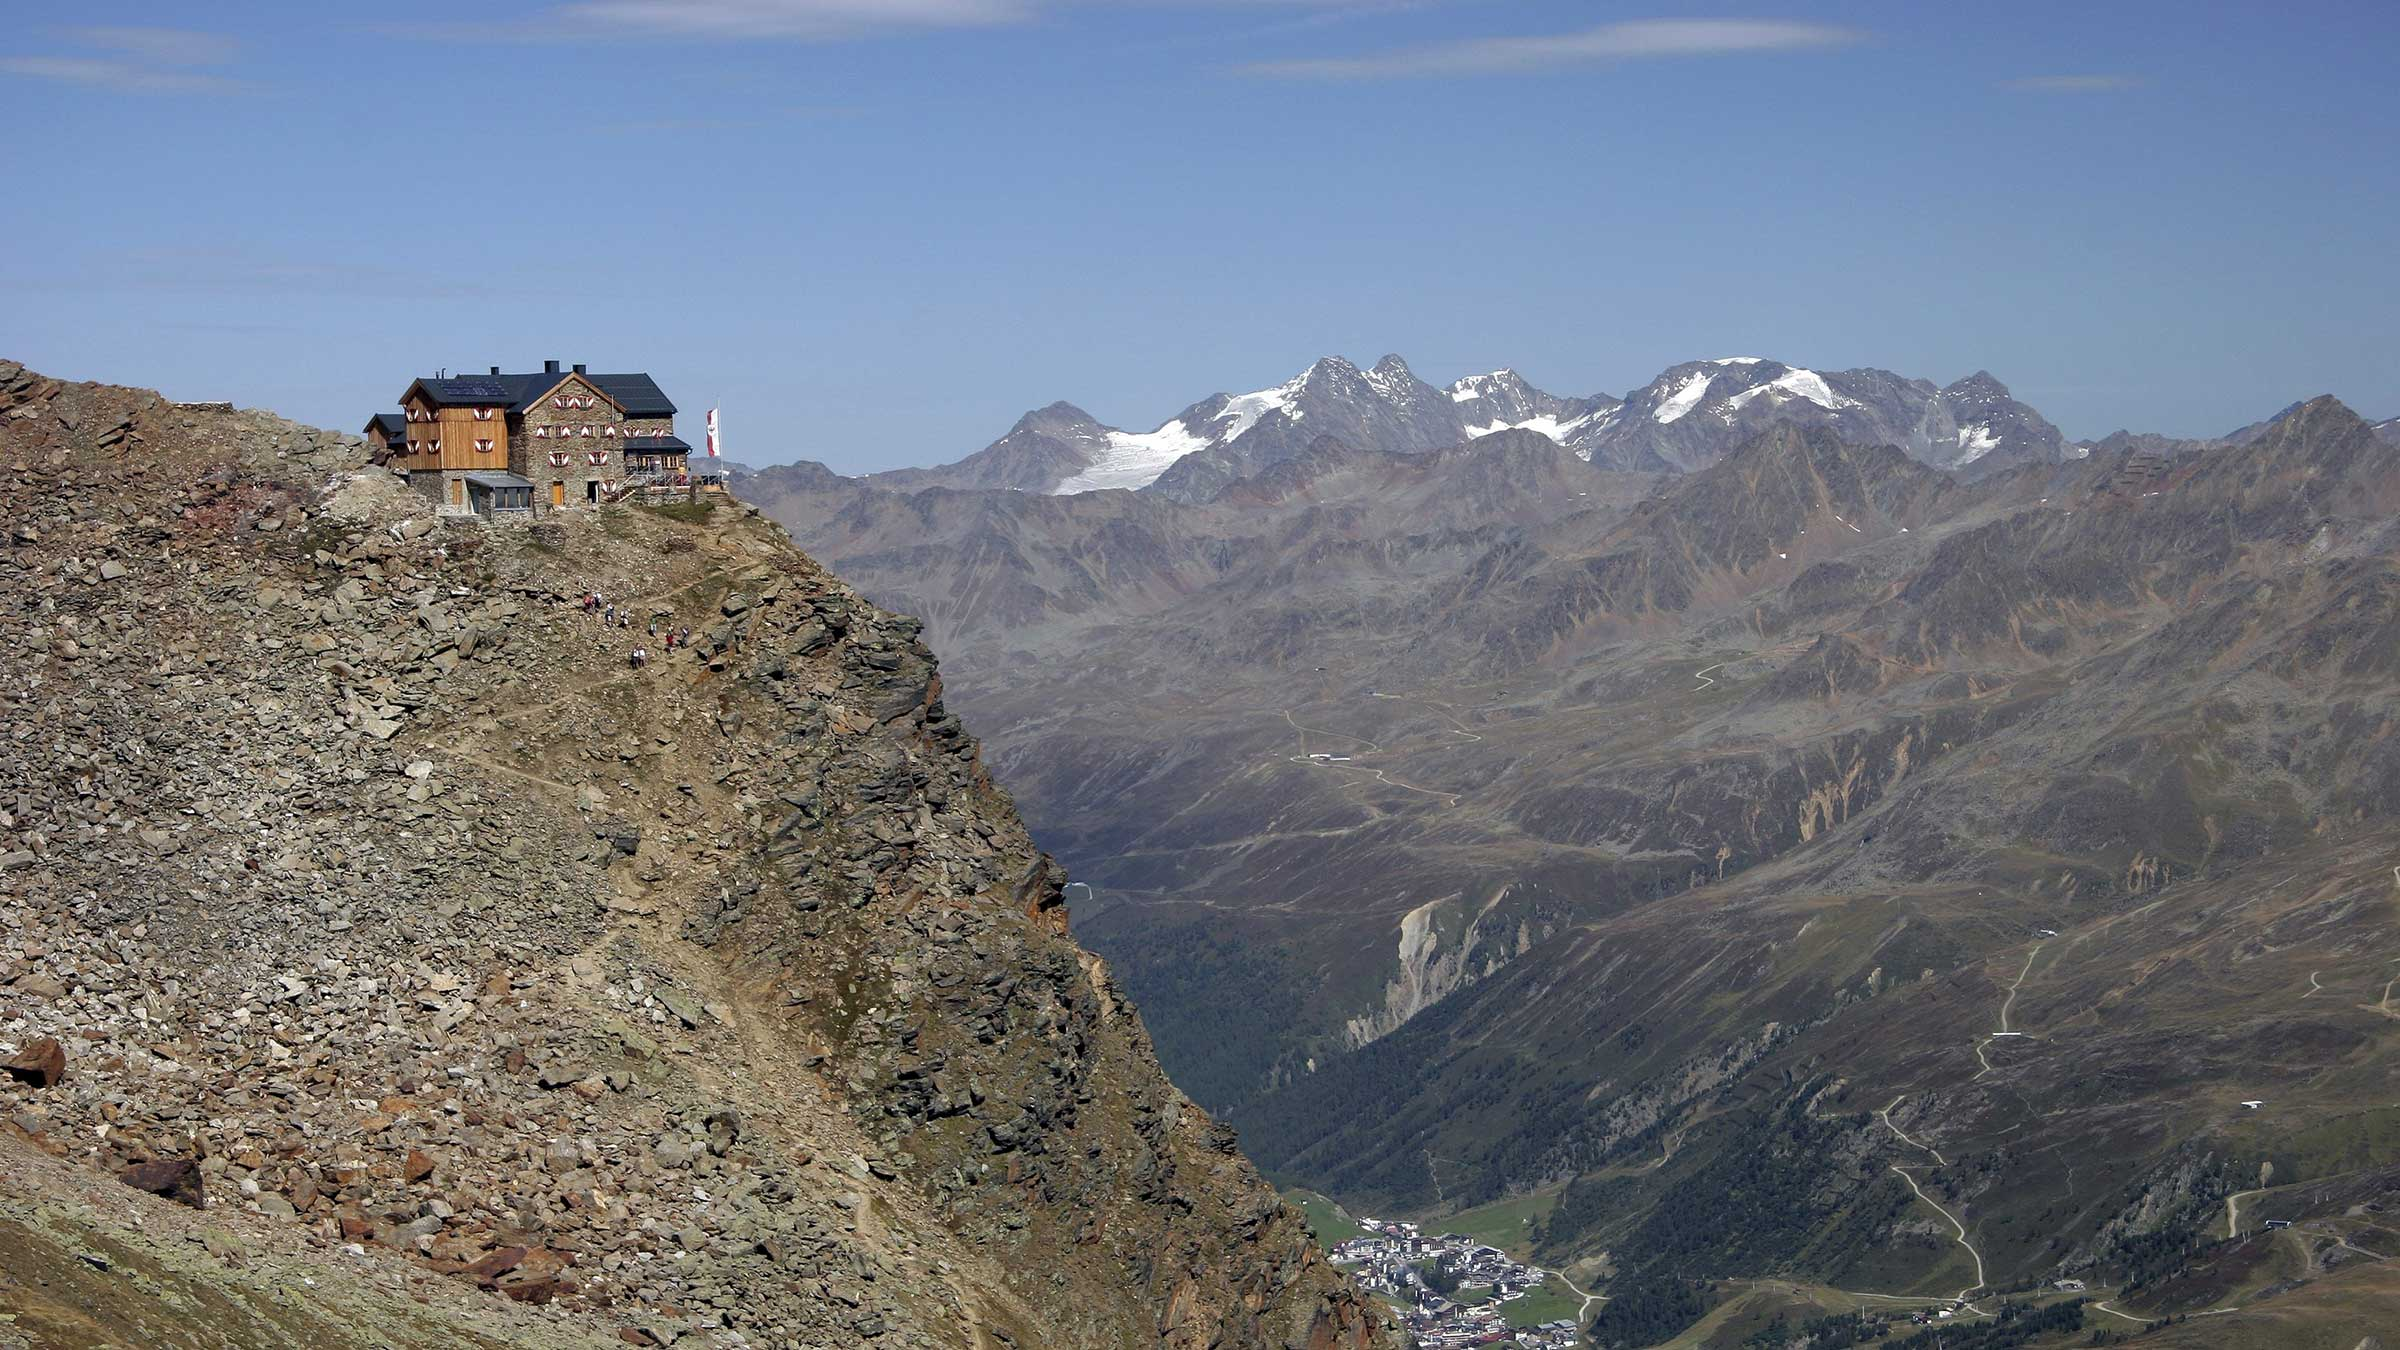 Ramolhaus – Awesome View of 3000-meter high Peaks